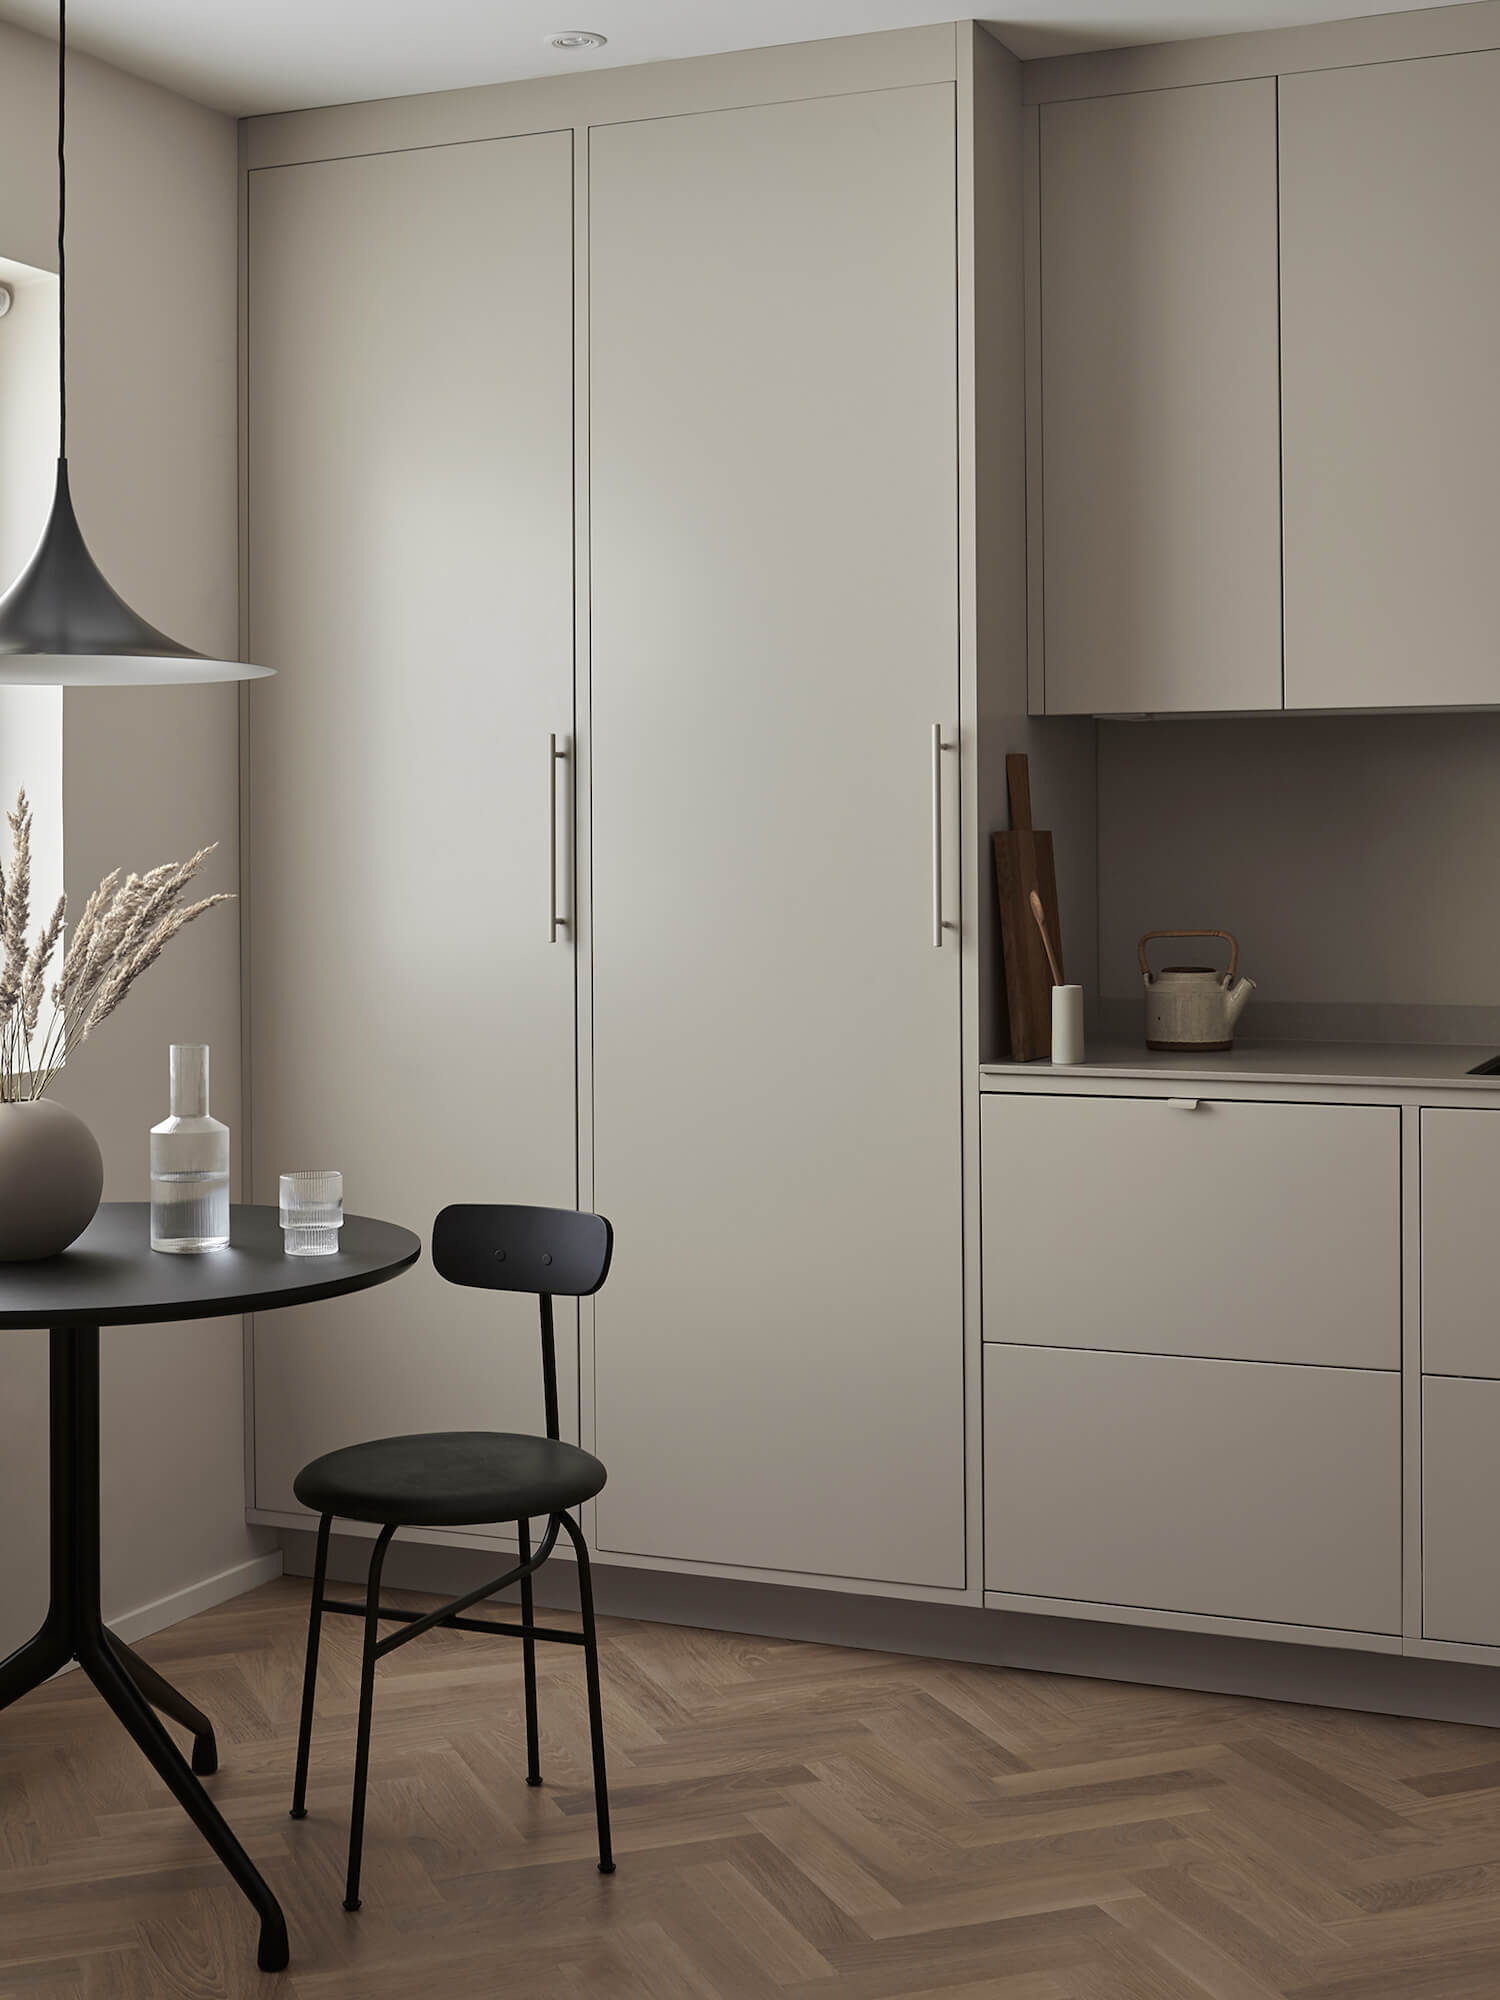 est living nordic style kitchen nordiska kok sand grey minimalist kitchen